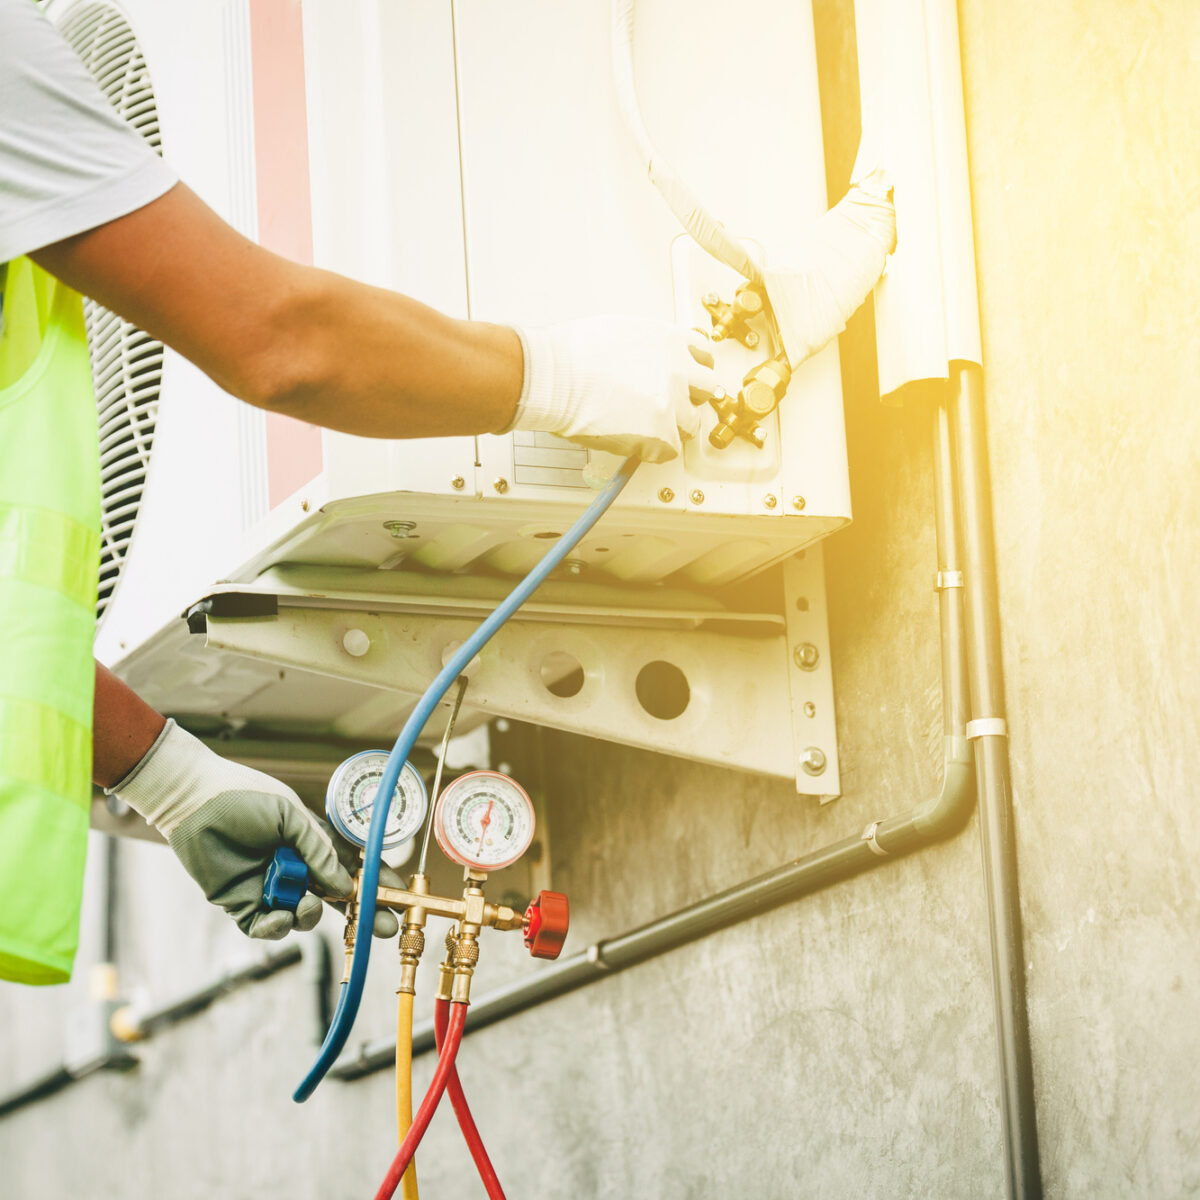 How To Become A Hvac Technician In 5 Simple Steps Intercoast Colleges